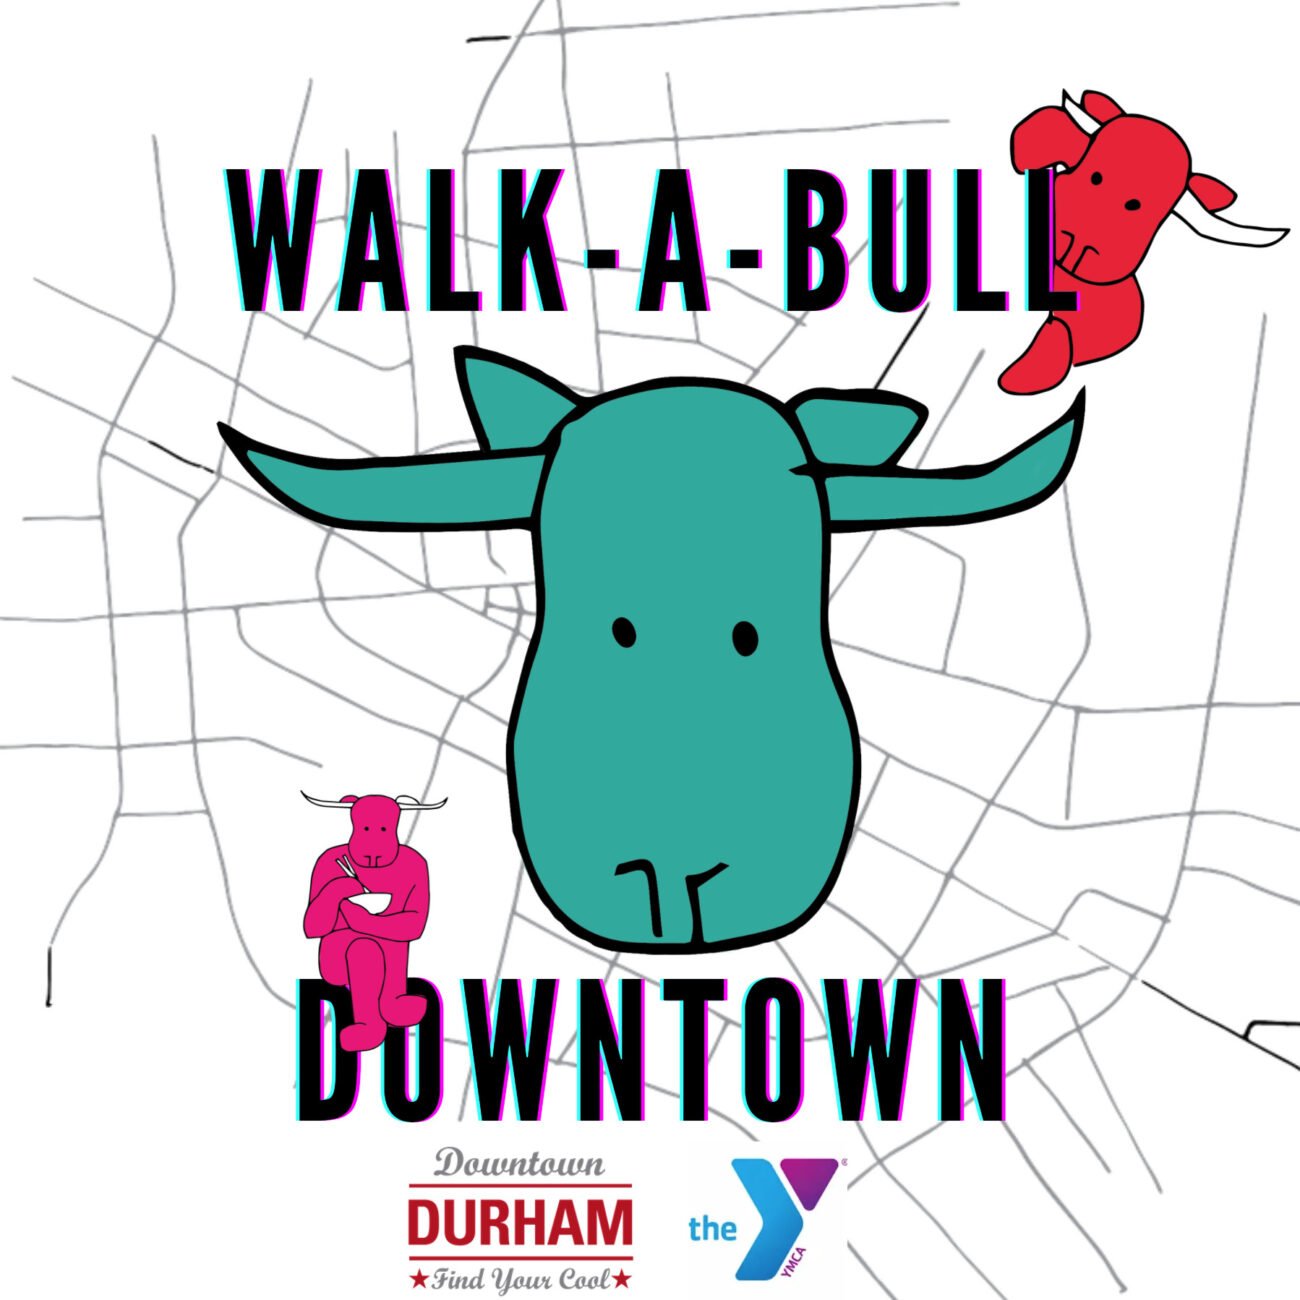 Walk-a-bull Downtown